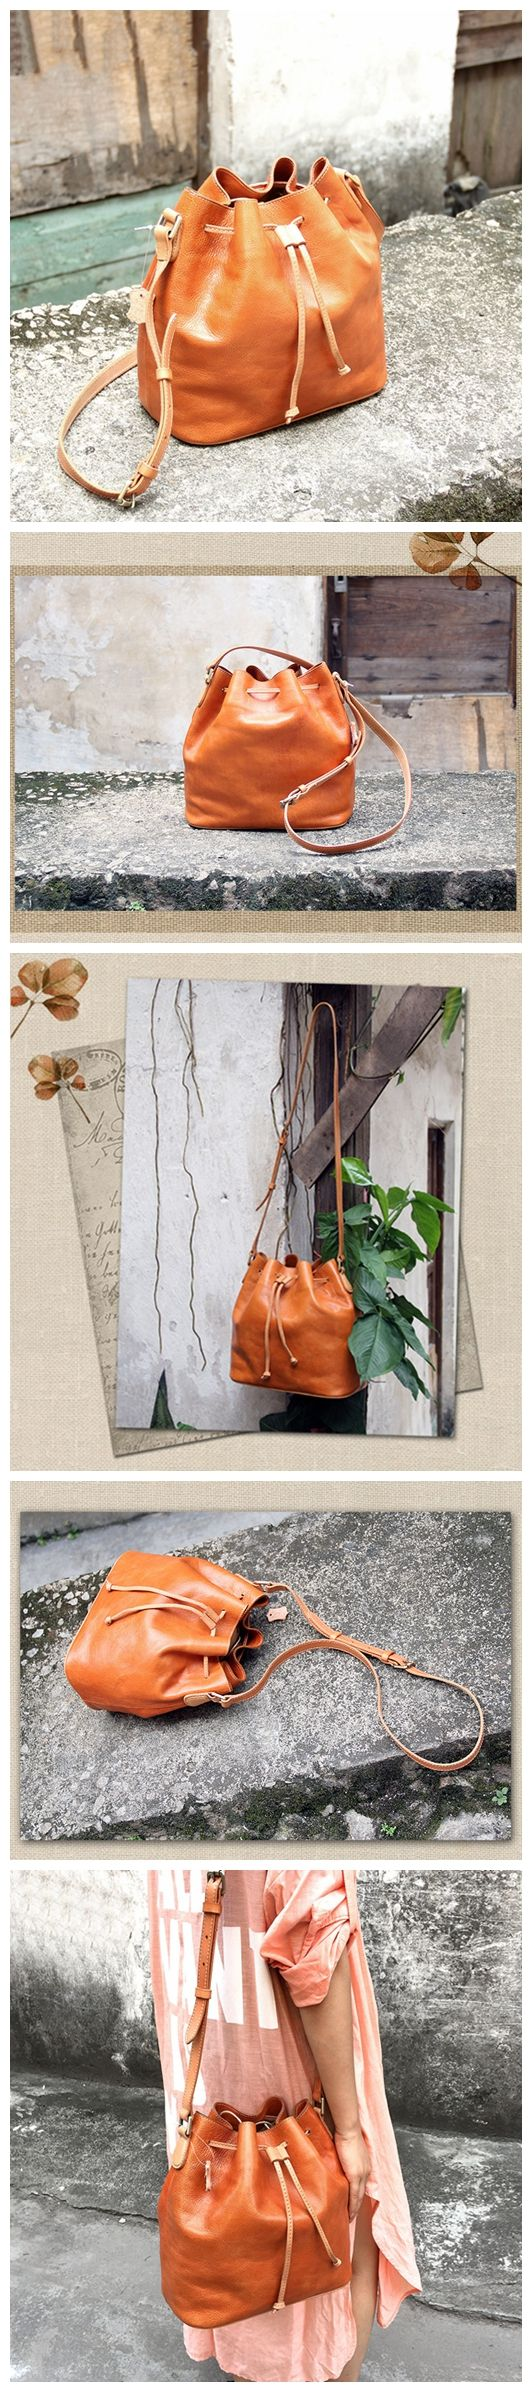 LISABAG--Vintage Genuine Leather Bucket Bag Shoulder Bag Women's Fashion Bag AK05